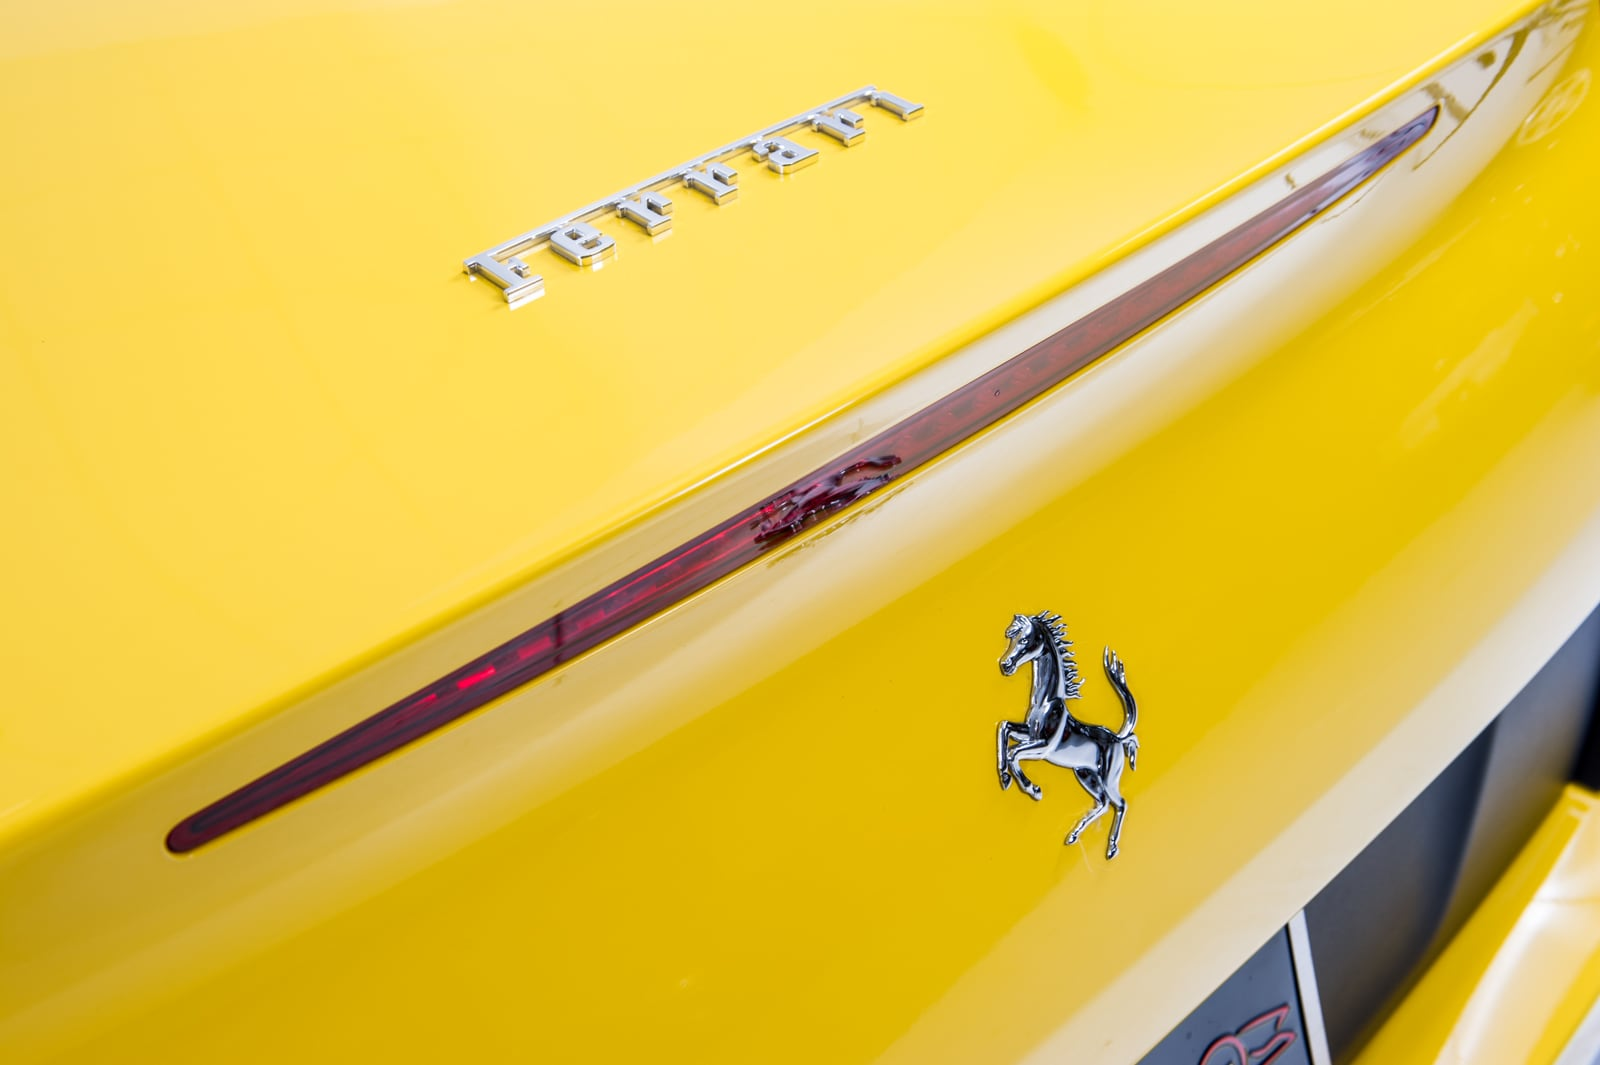 Used 2014 FERRARI CALIFORNIA in Yellow For Sale in NYC | VIN ...